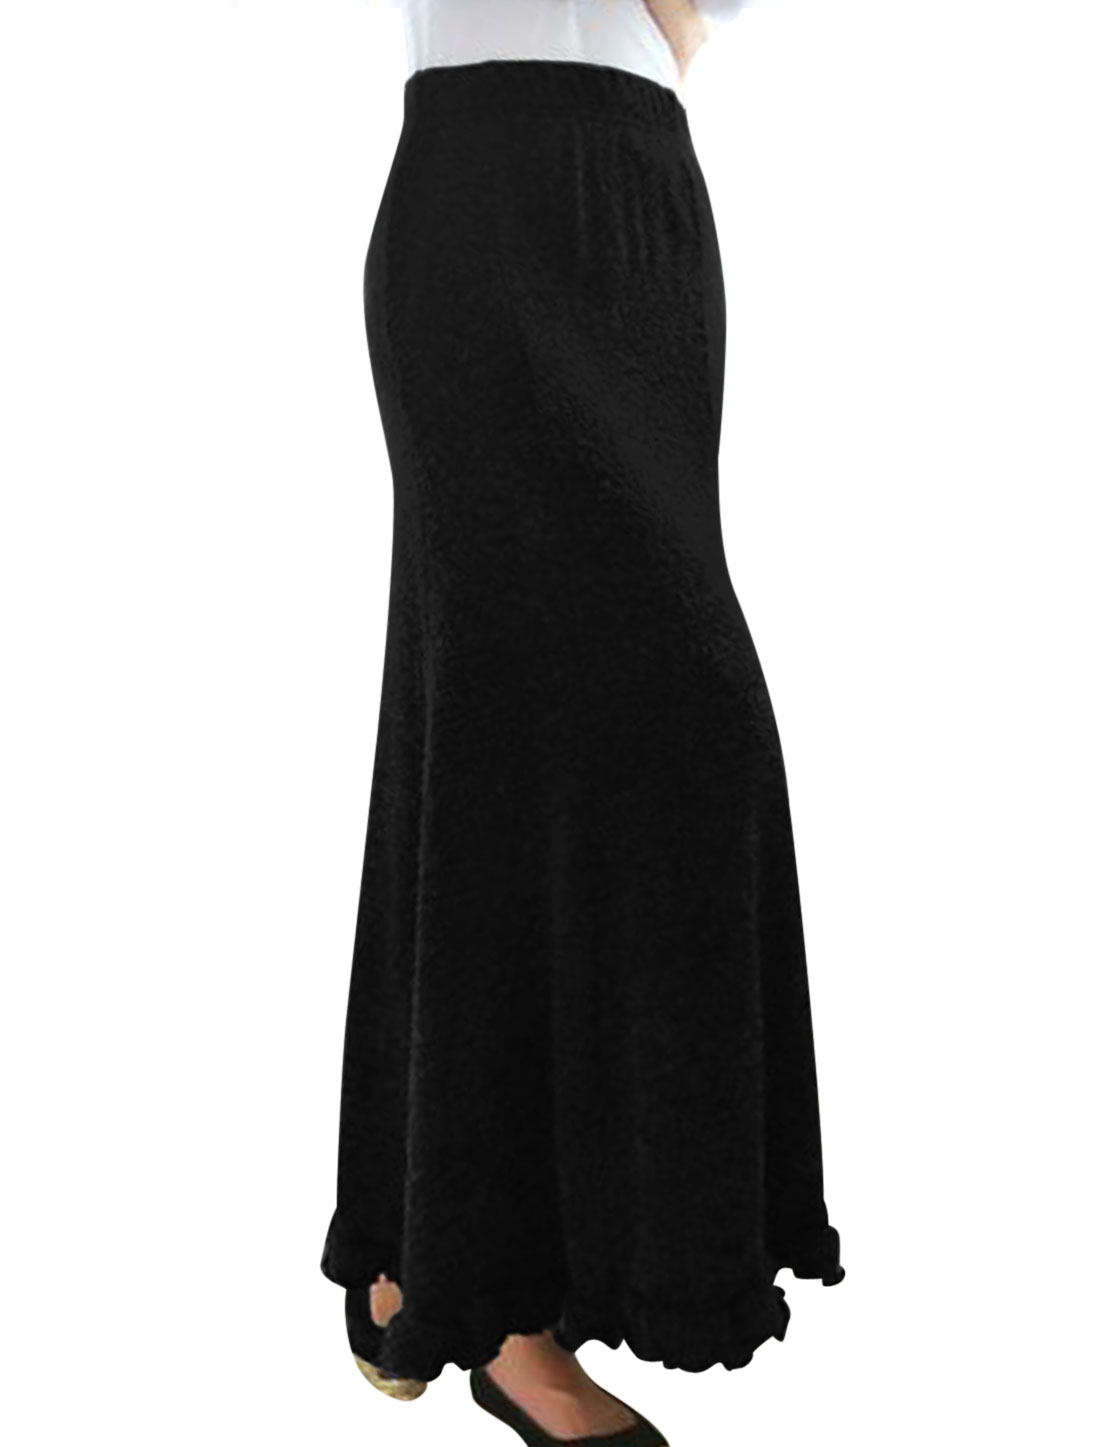 Ladies Black Elastic Waist Ruffled Hem Casual Maxi Skirt M